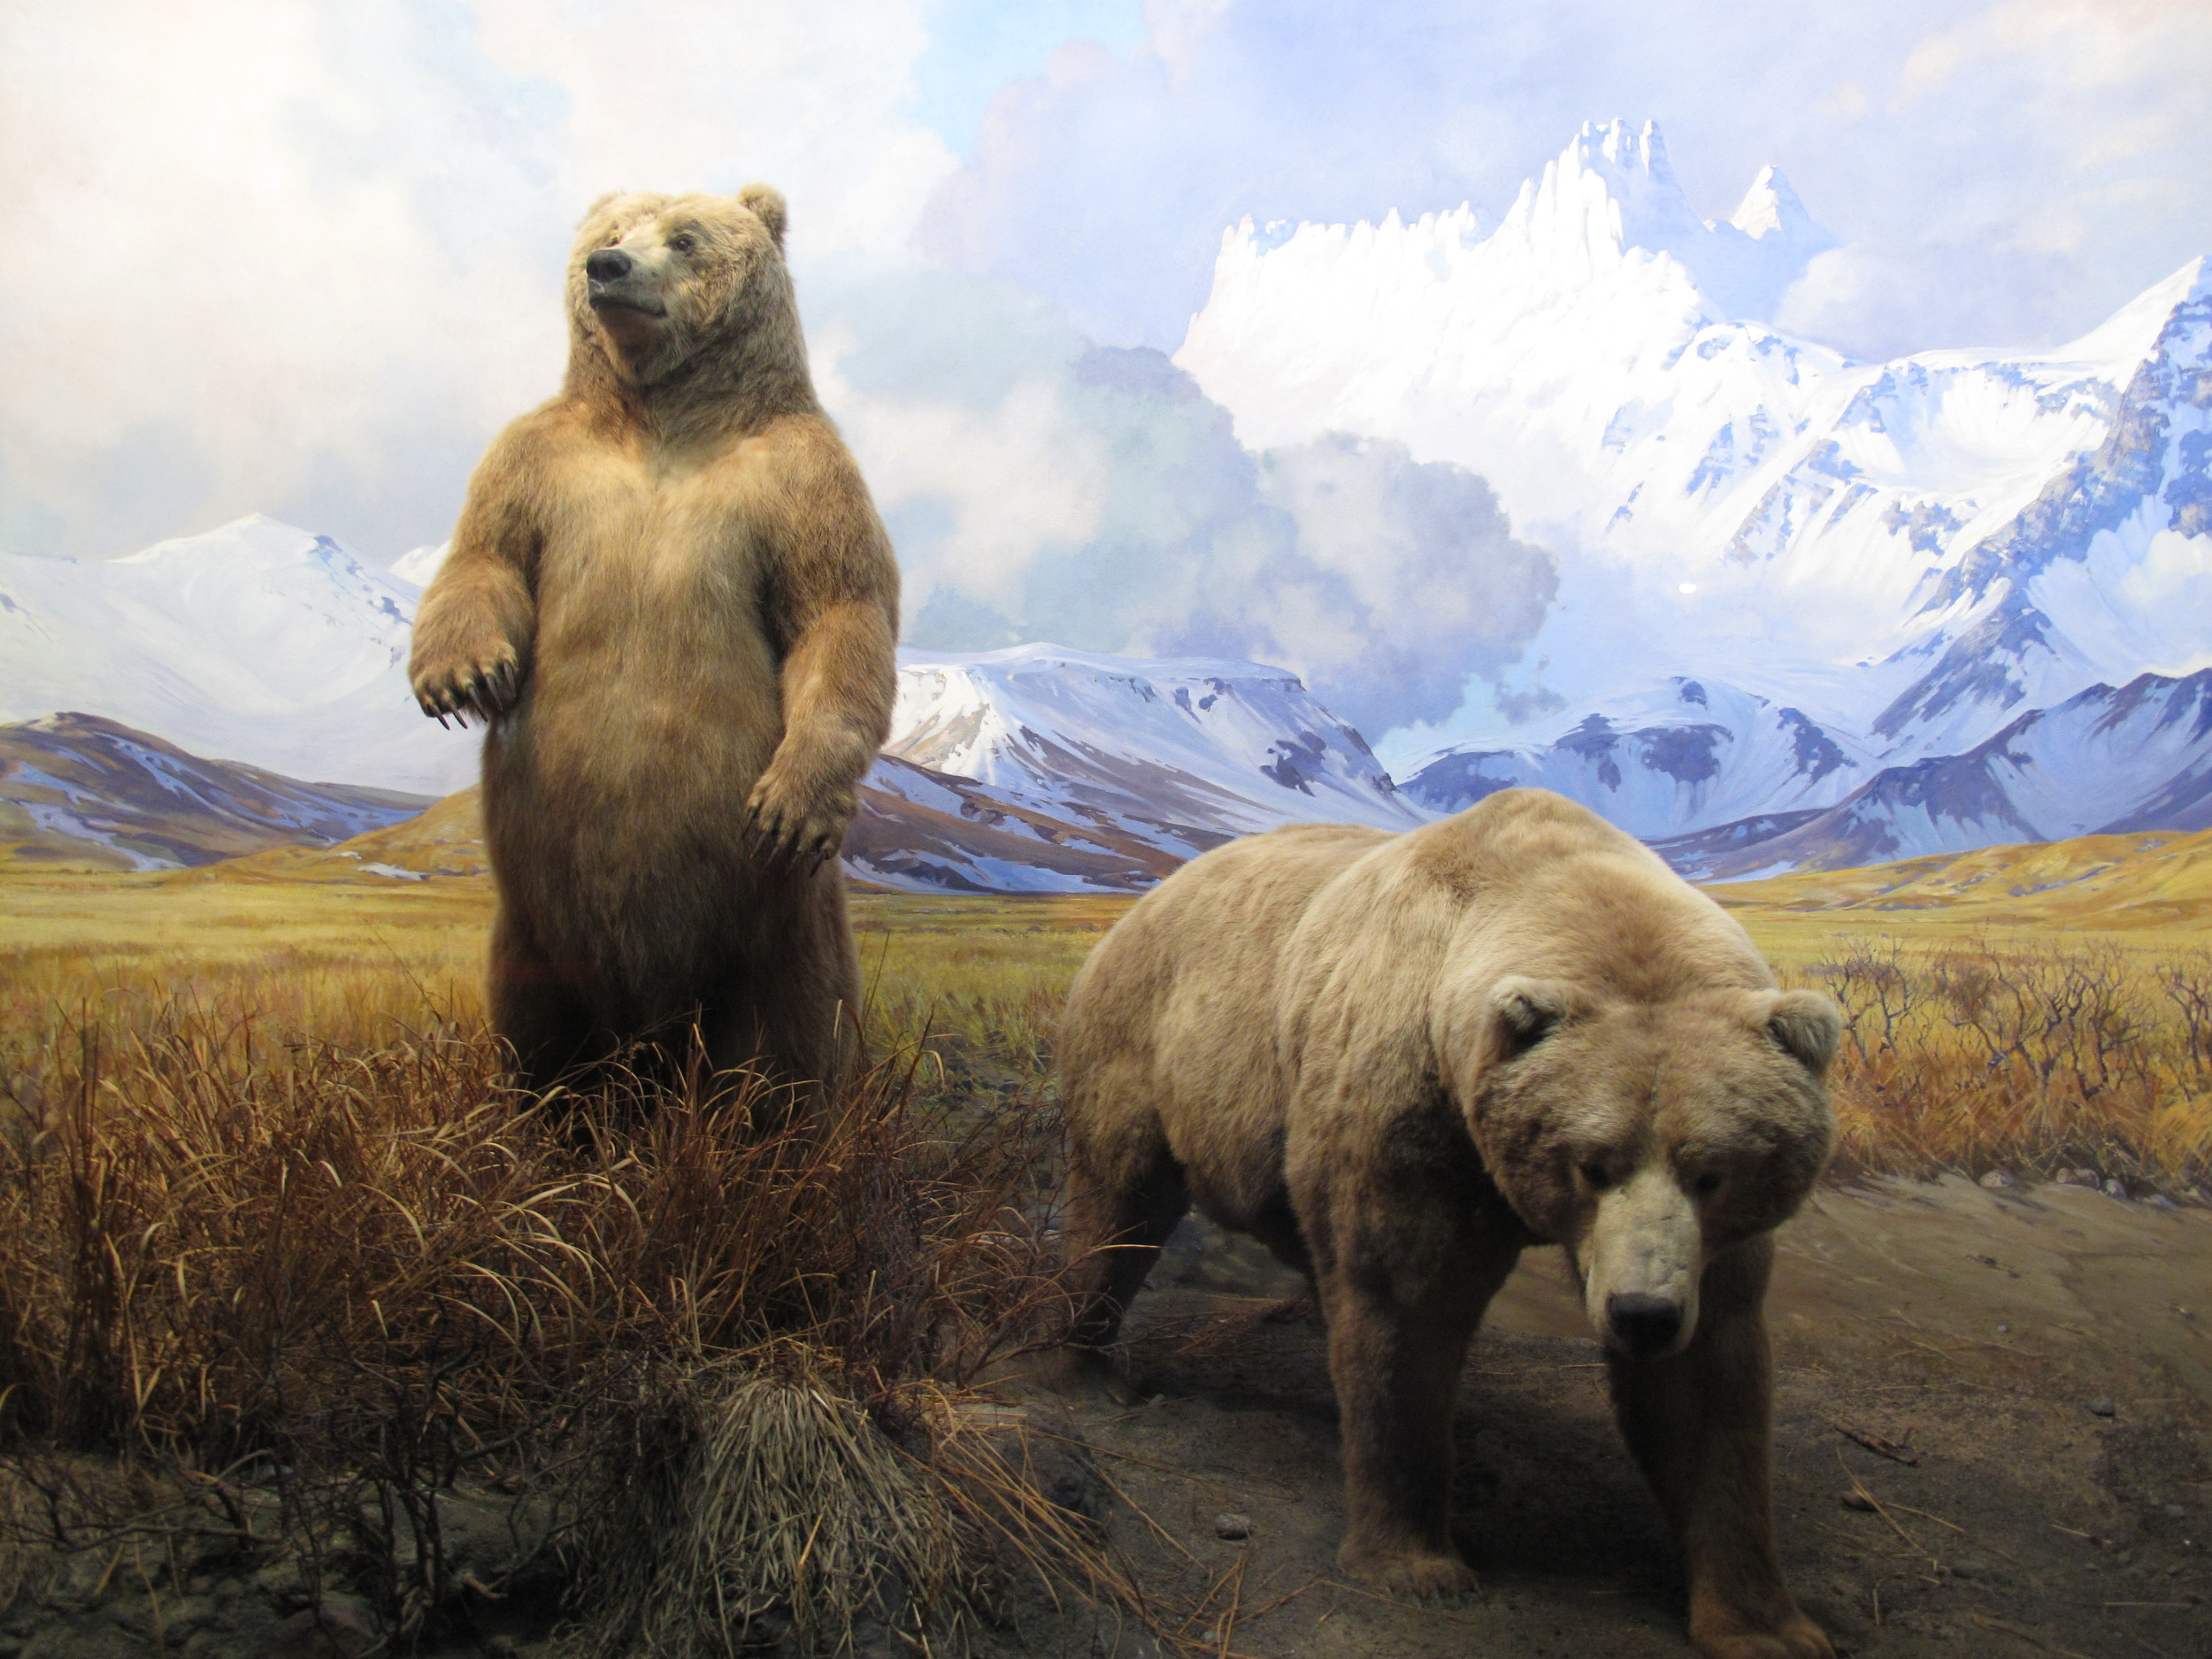 As the Natural History Museum's display makes clear, Alaska brown bears such as these are utterly gigantic—much bigger than grizzlies, though (good news if you run into one) their claws are shorter and their temperament less aggressive.